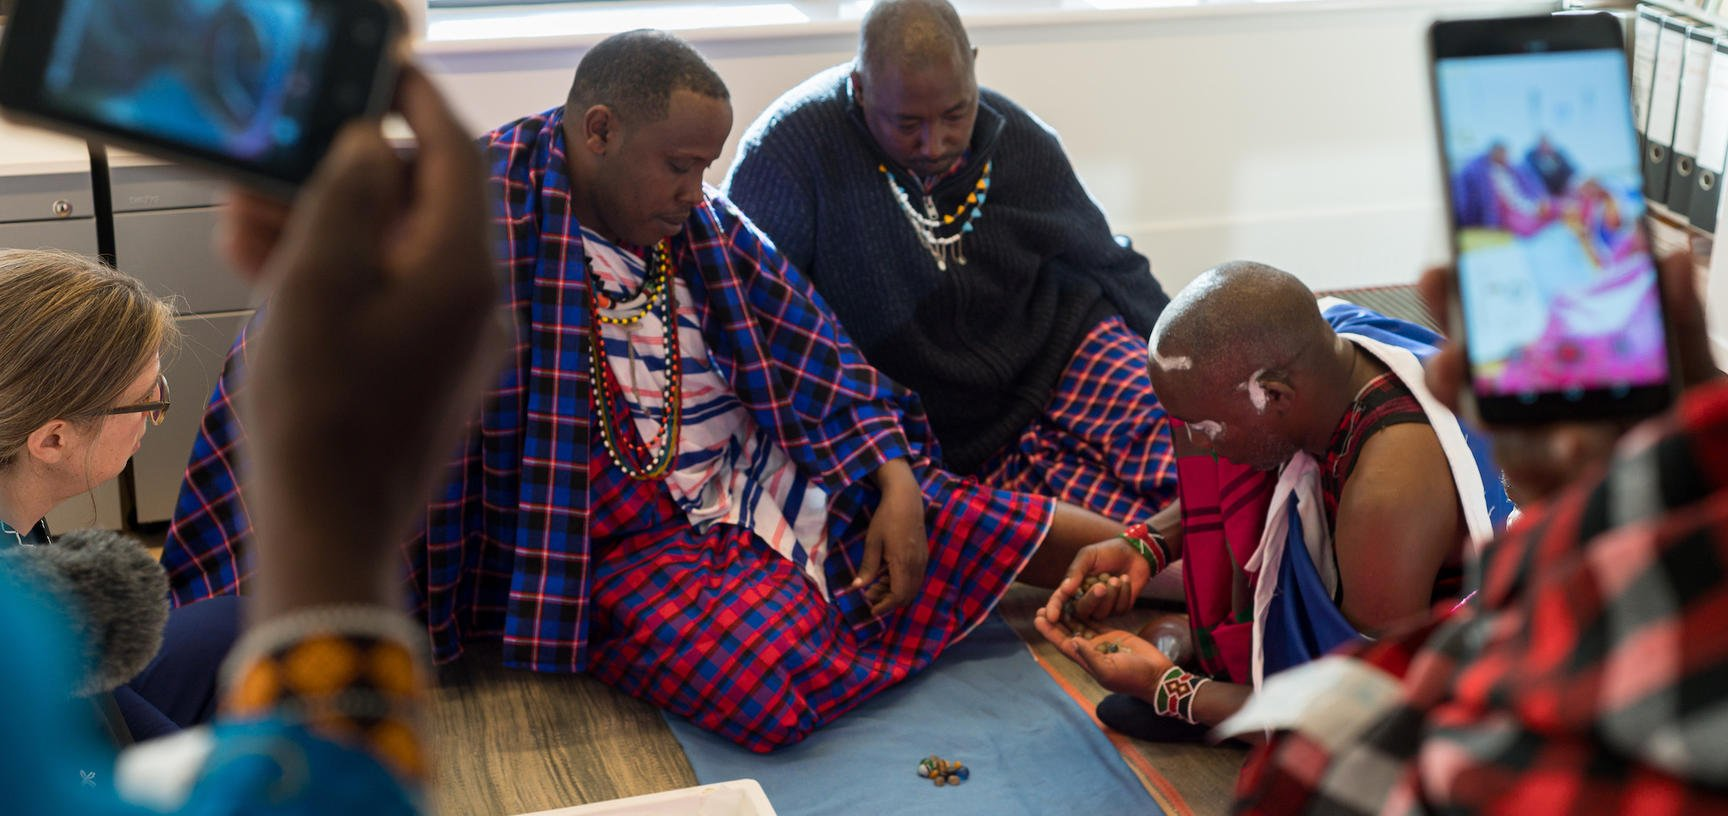 The film captures a visit by the Maasai delegation to the Pitt Rivers Museum in January